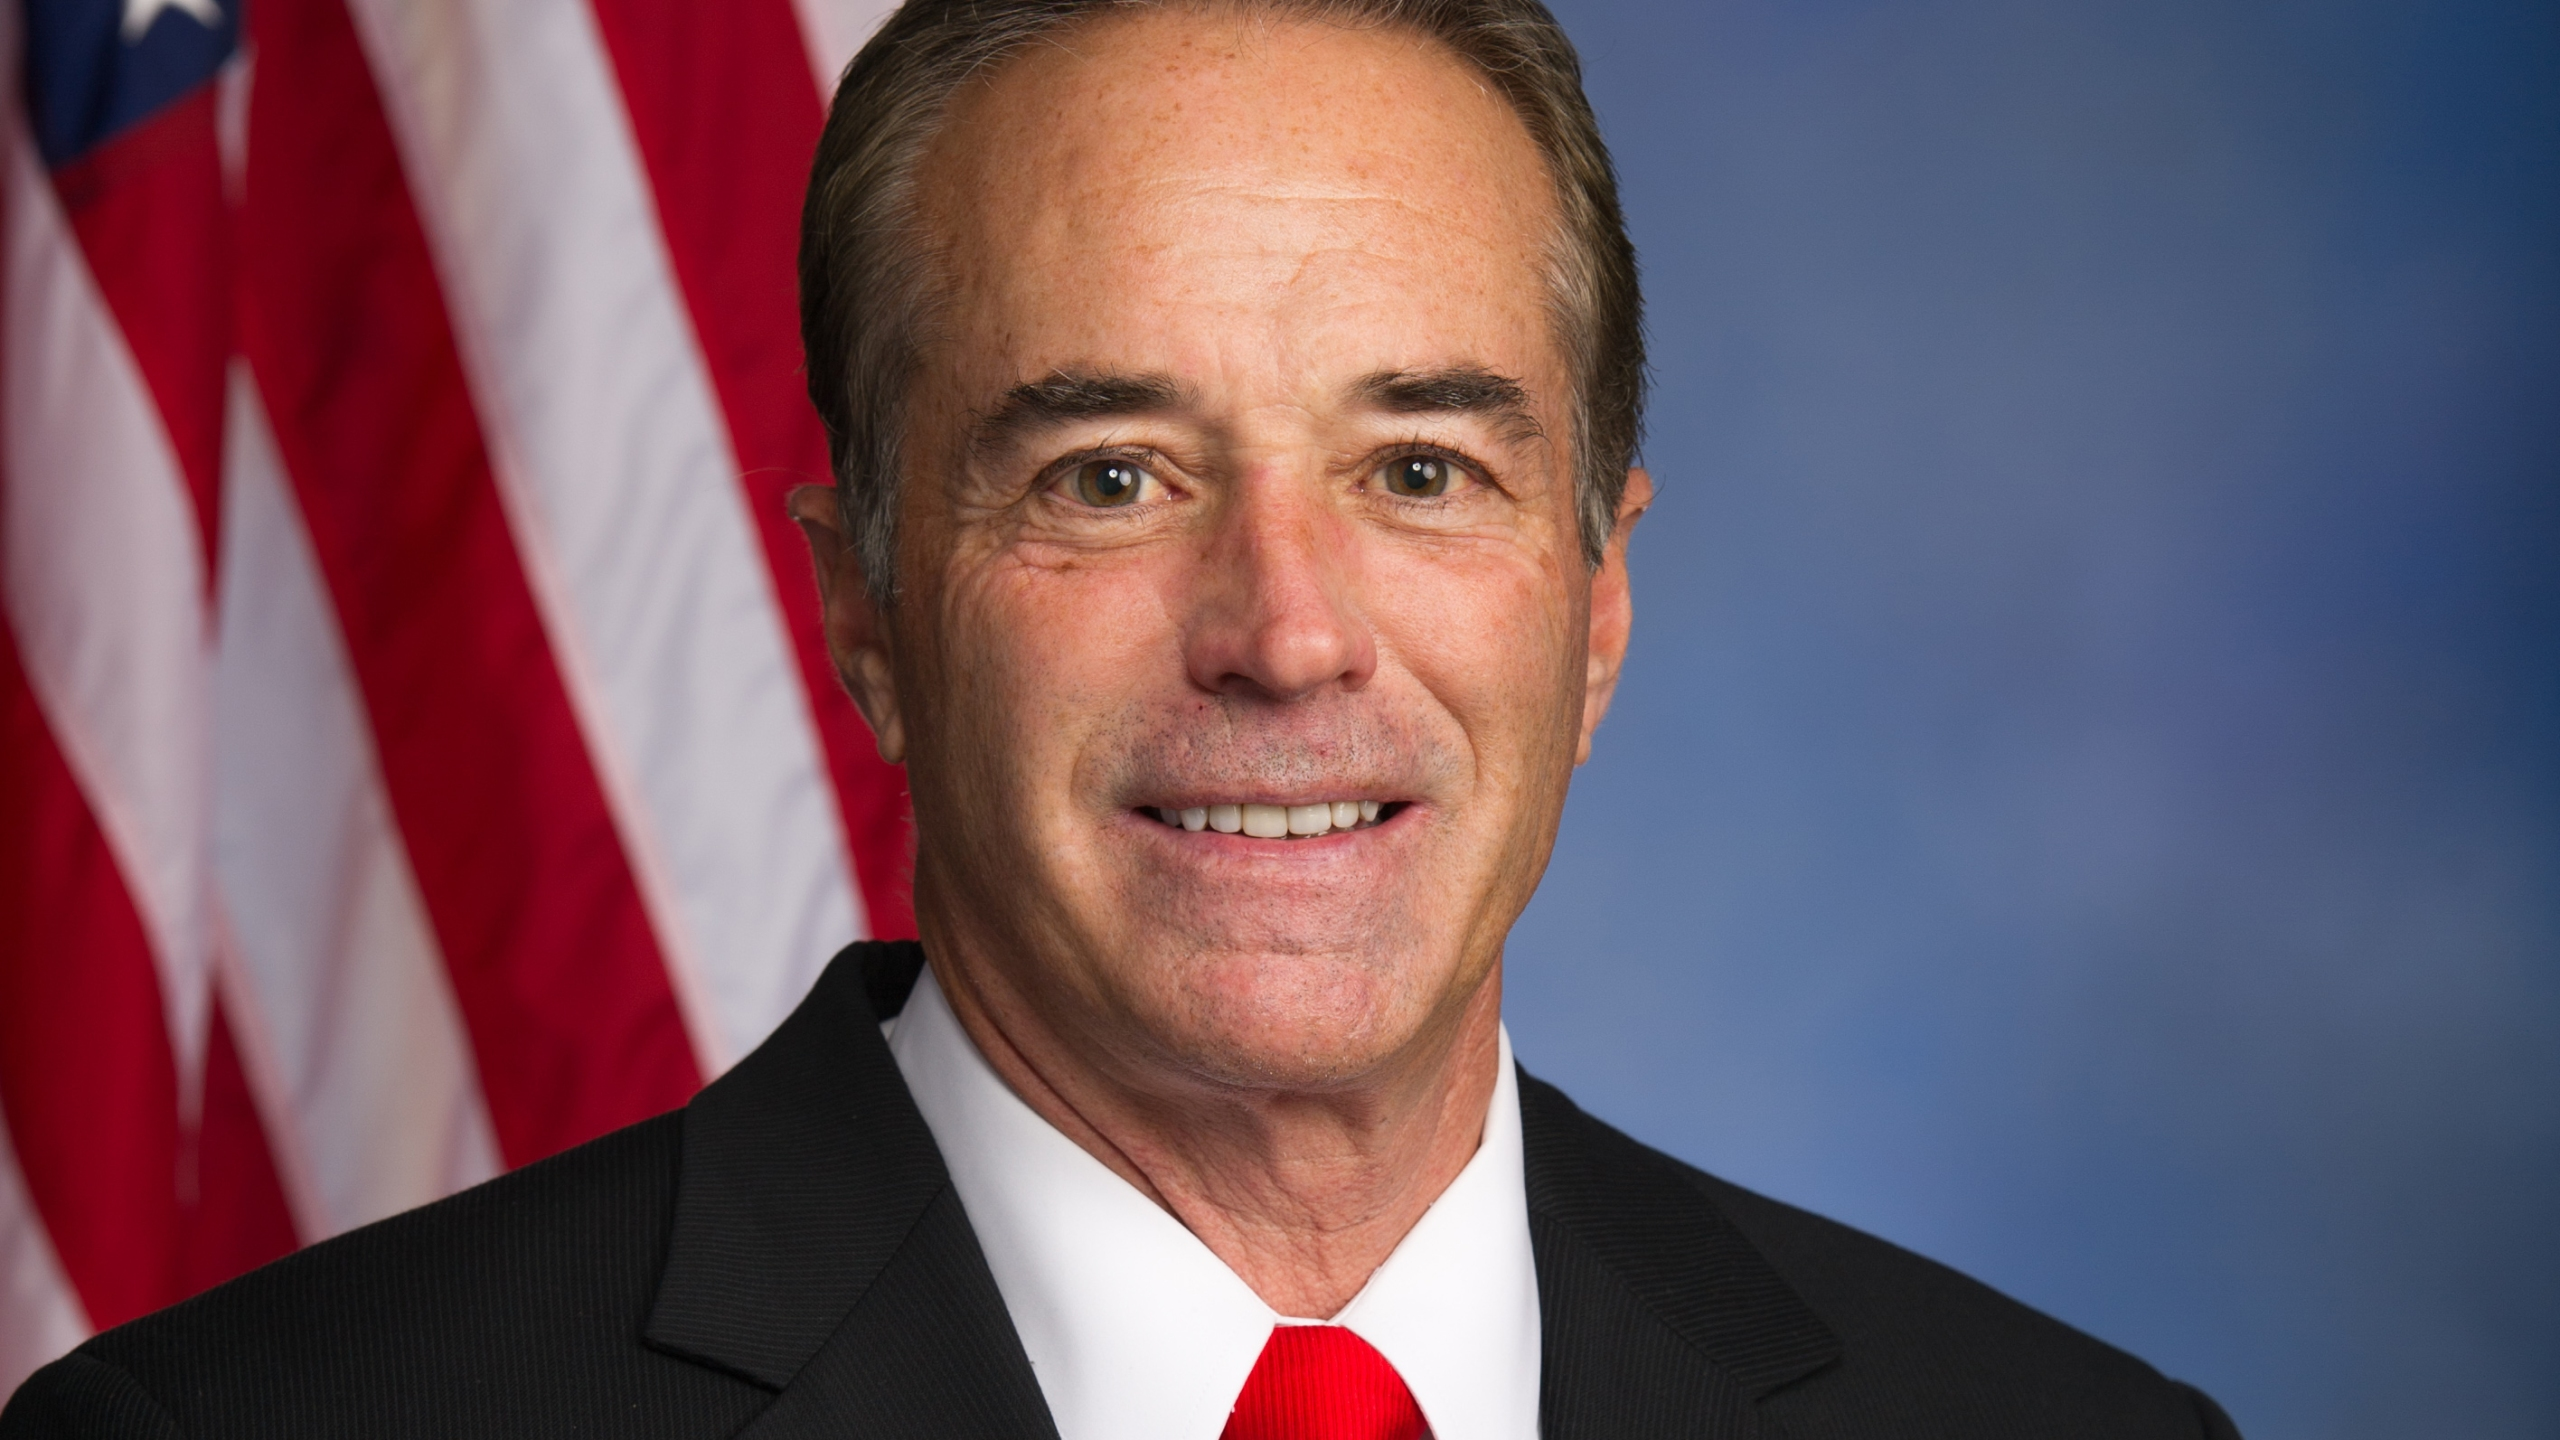 Chris_Collins,_Official_Portrait,_113th_Congress_1507848264524-159532.jpg49762177